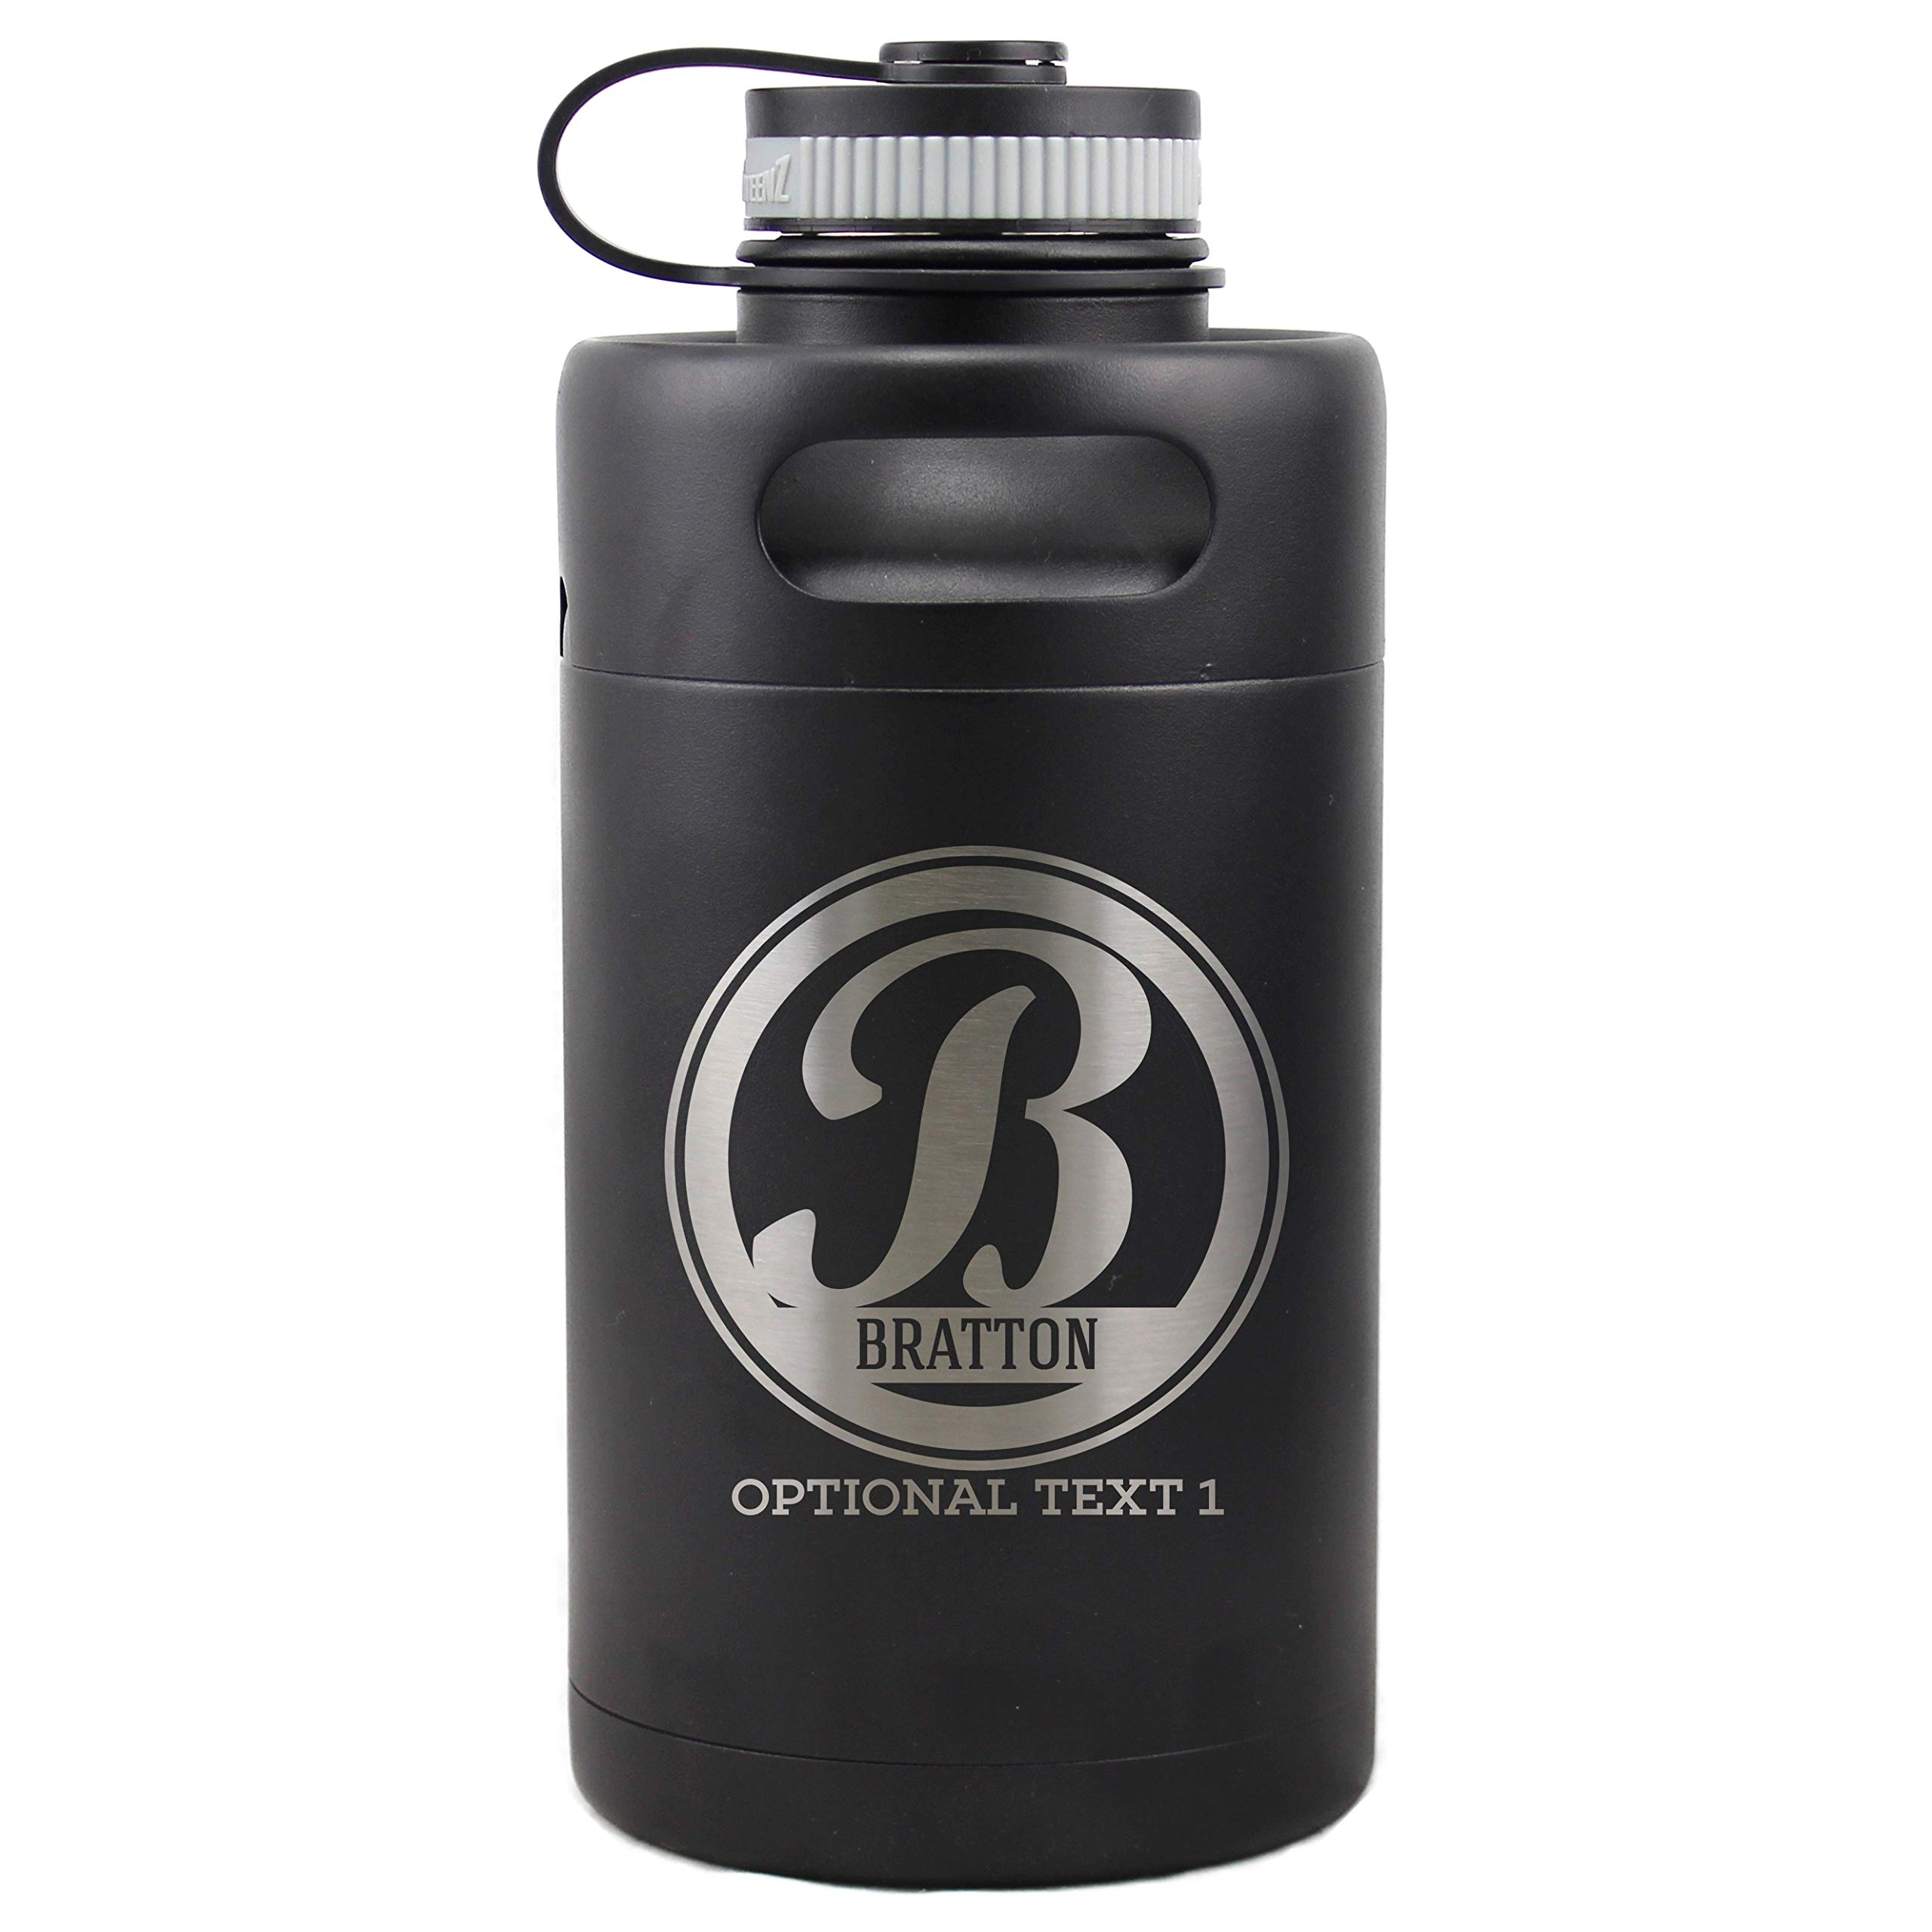 Personalized Etched Monogram Insulated Beer Growler 64oz Keg (Matte Black)